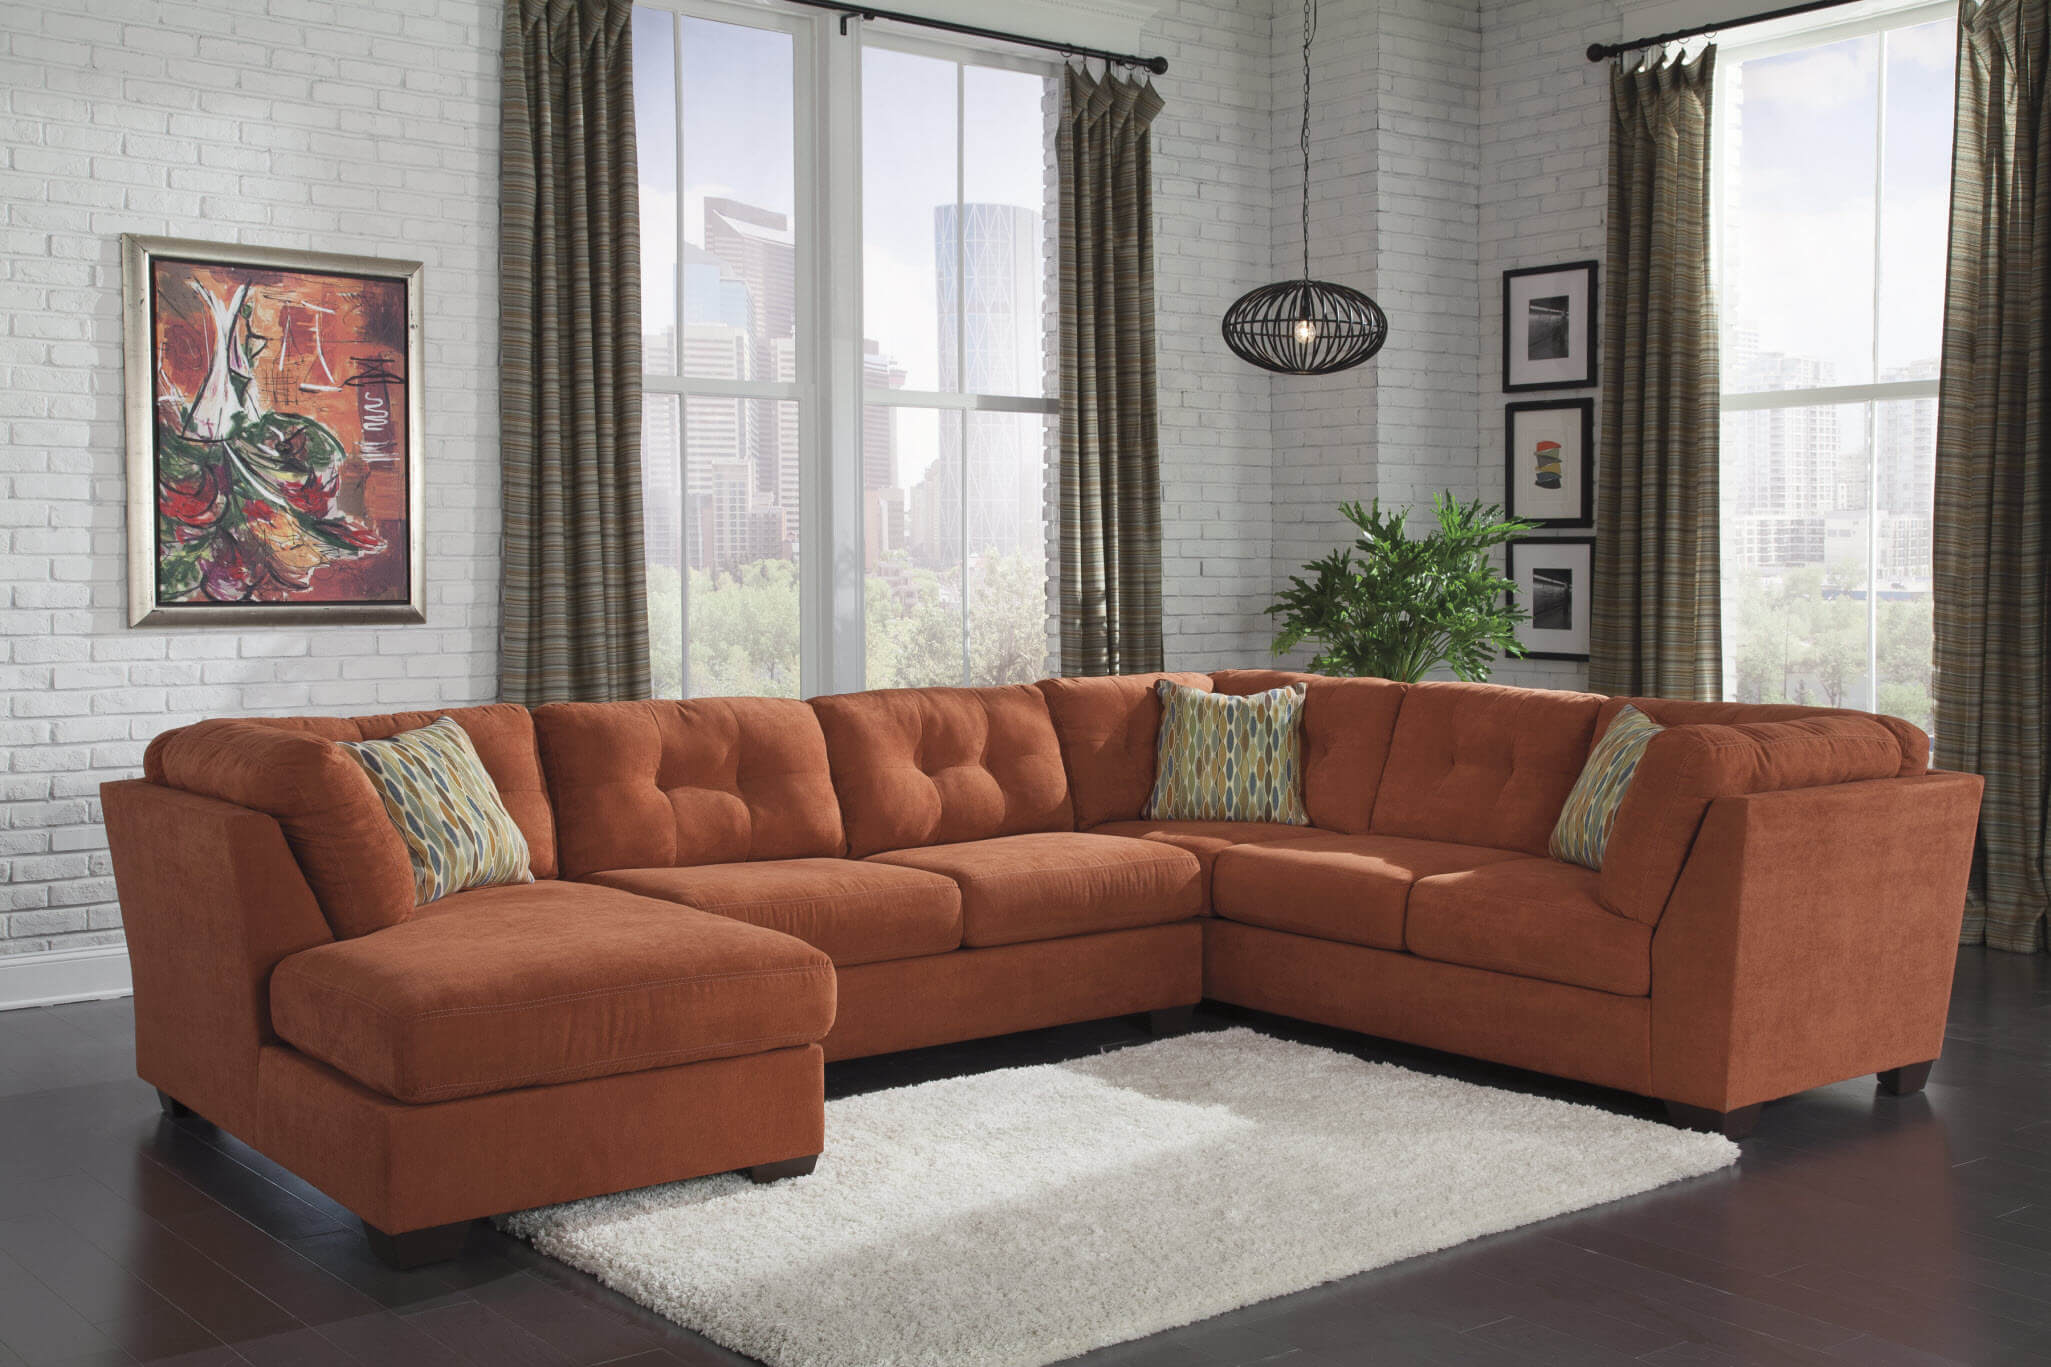 delta city rust sectional sectional sofa sets. Black Bedroom Furniture Sets. Home Design Ideas